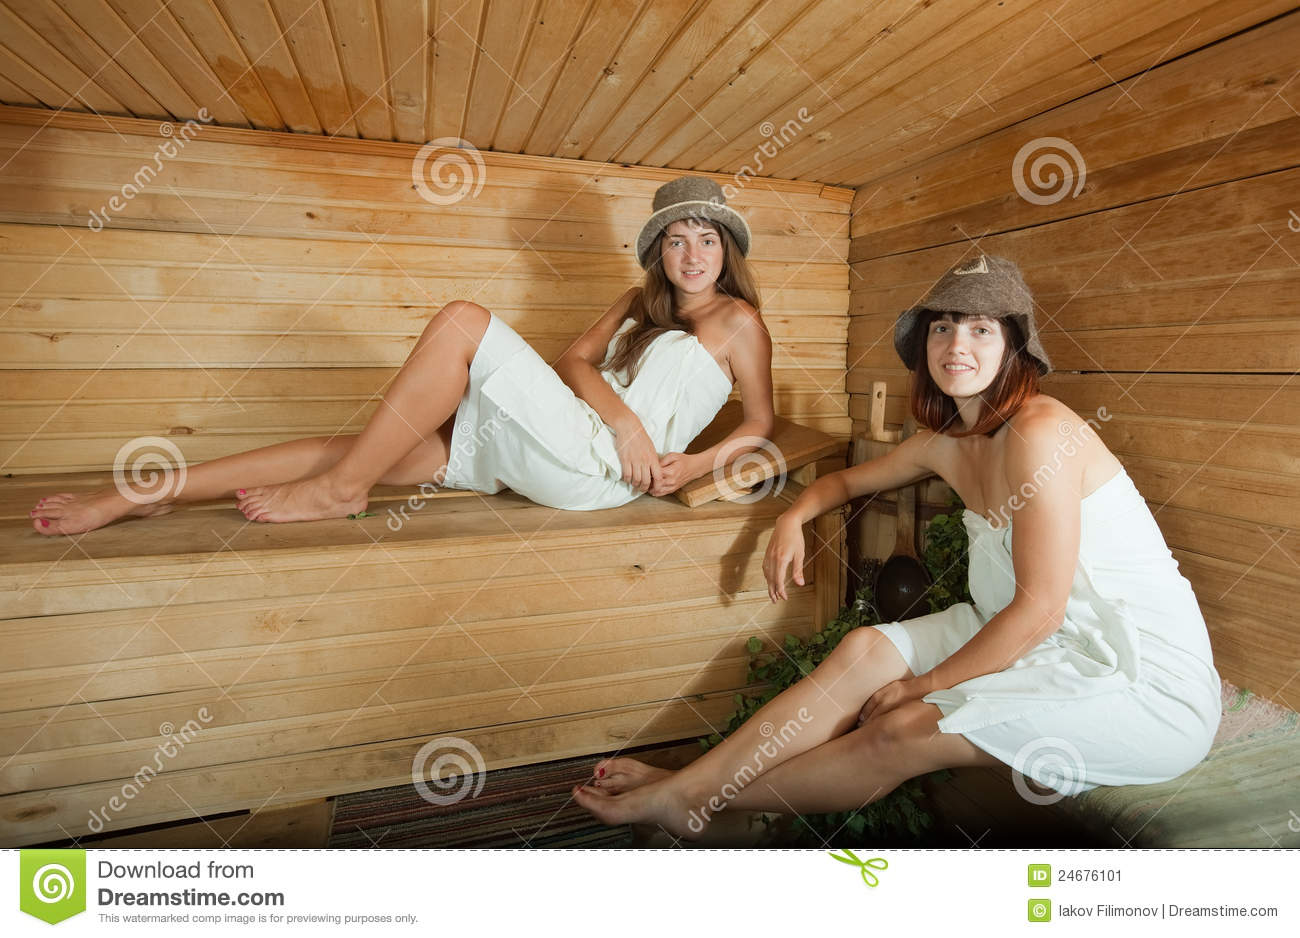 Two girls in sauna stock image. Image of friends 9eb679792